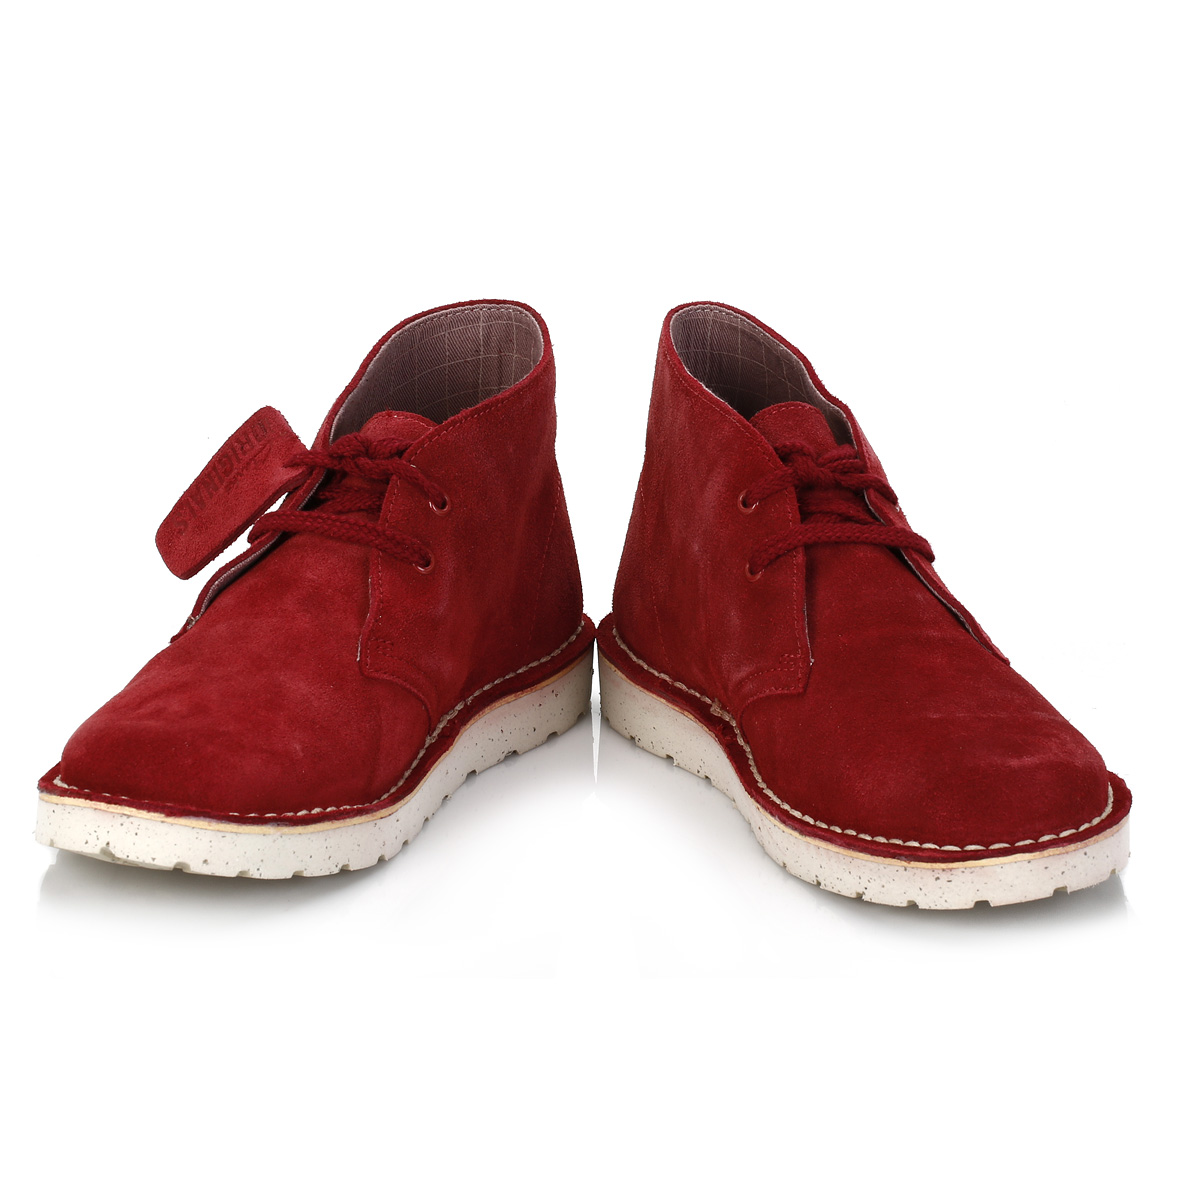 Womens Red Bootie Shoes